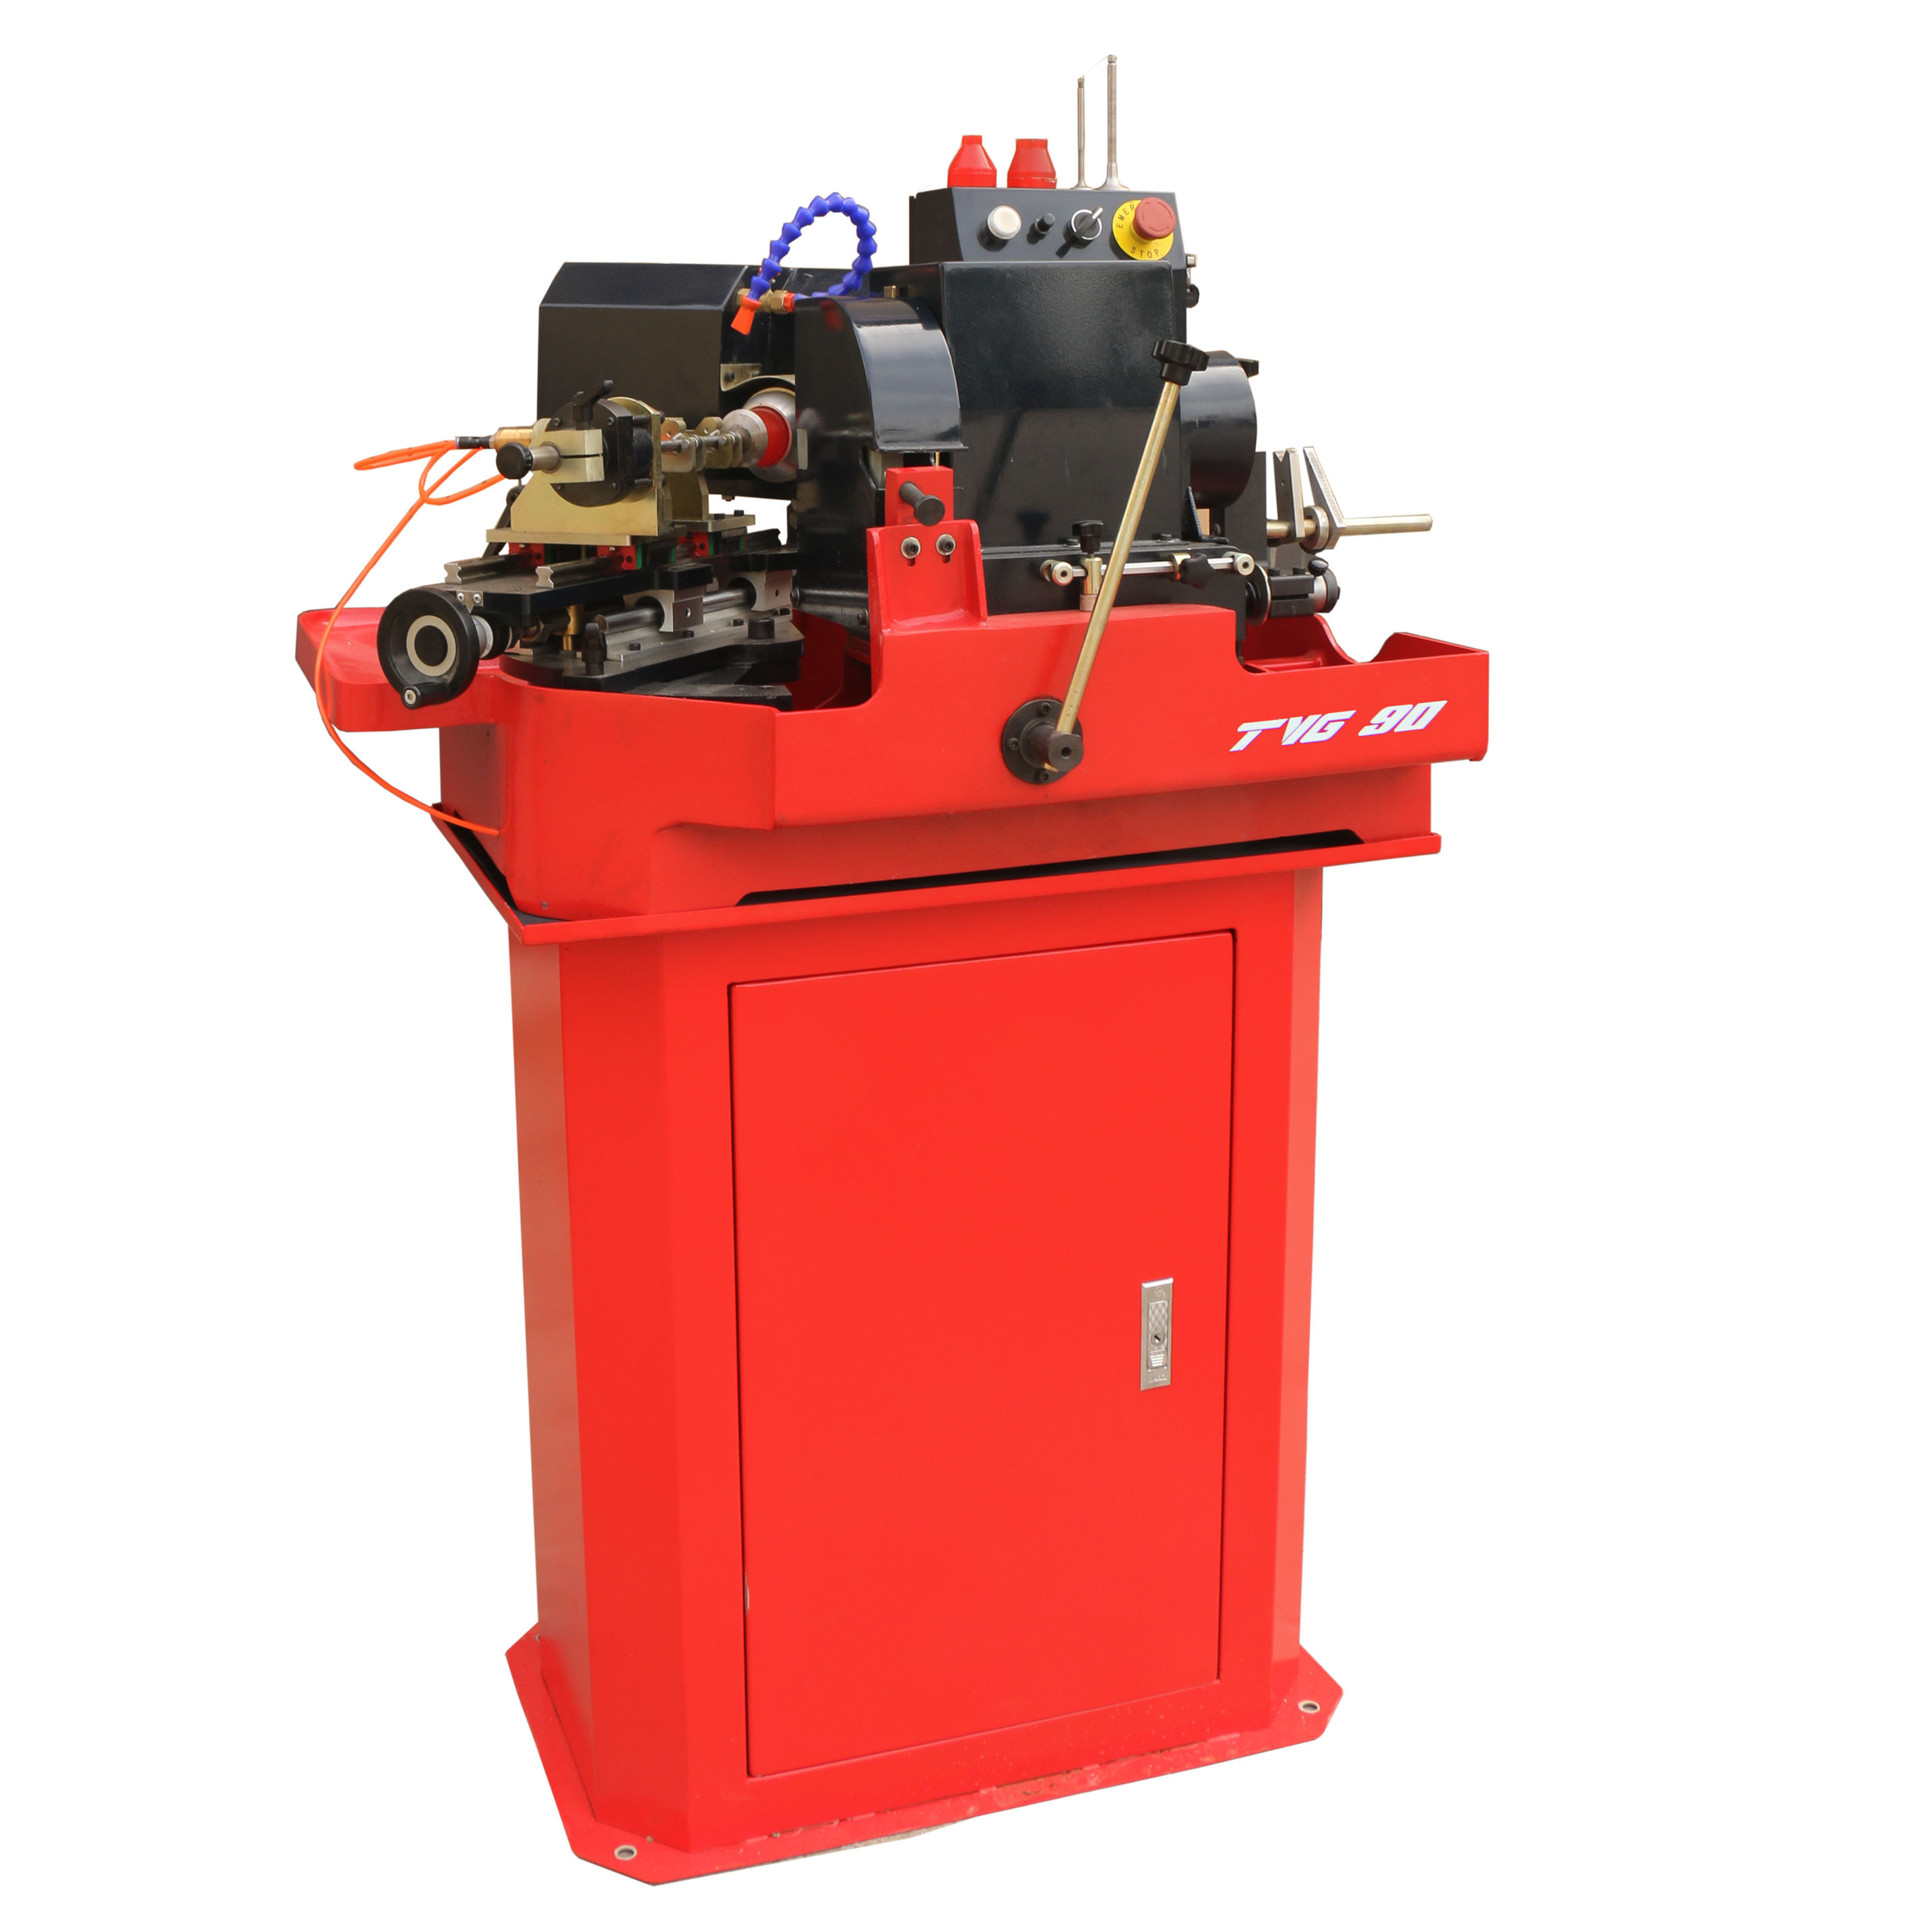 TVG90 valve grinding machine FOR ENGINE OVERHAUL